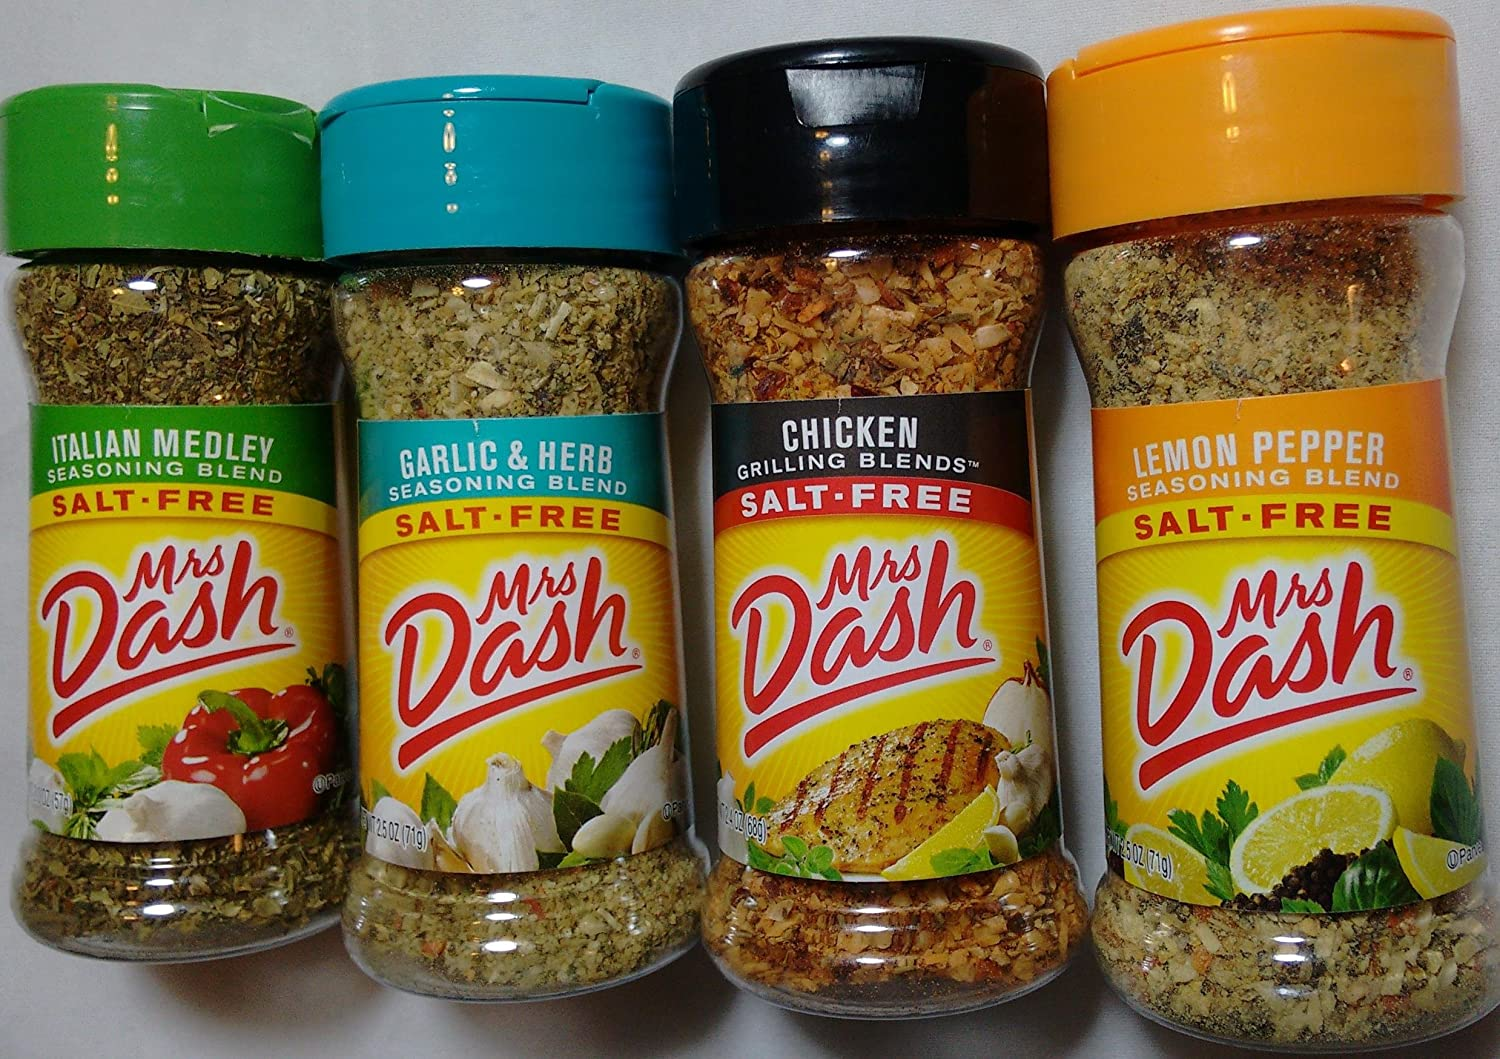 Mrs. Dash Seasoning Blends Variety Flavor 4 Pack, Italian Medley 2.0oz, Garlic & Herb 2.5oz, Chicken Grilling 2.4ozLemon Pepper 2.5 oz